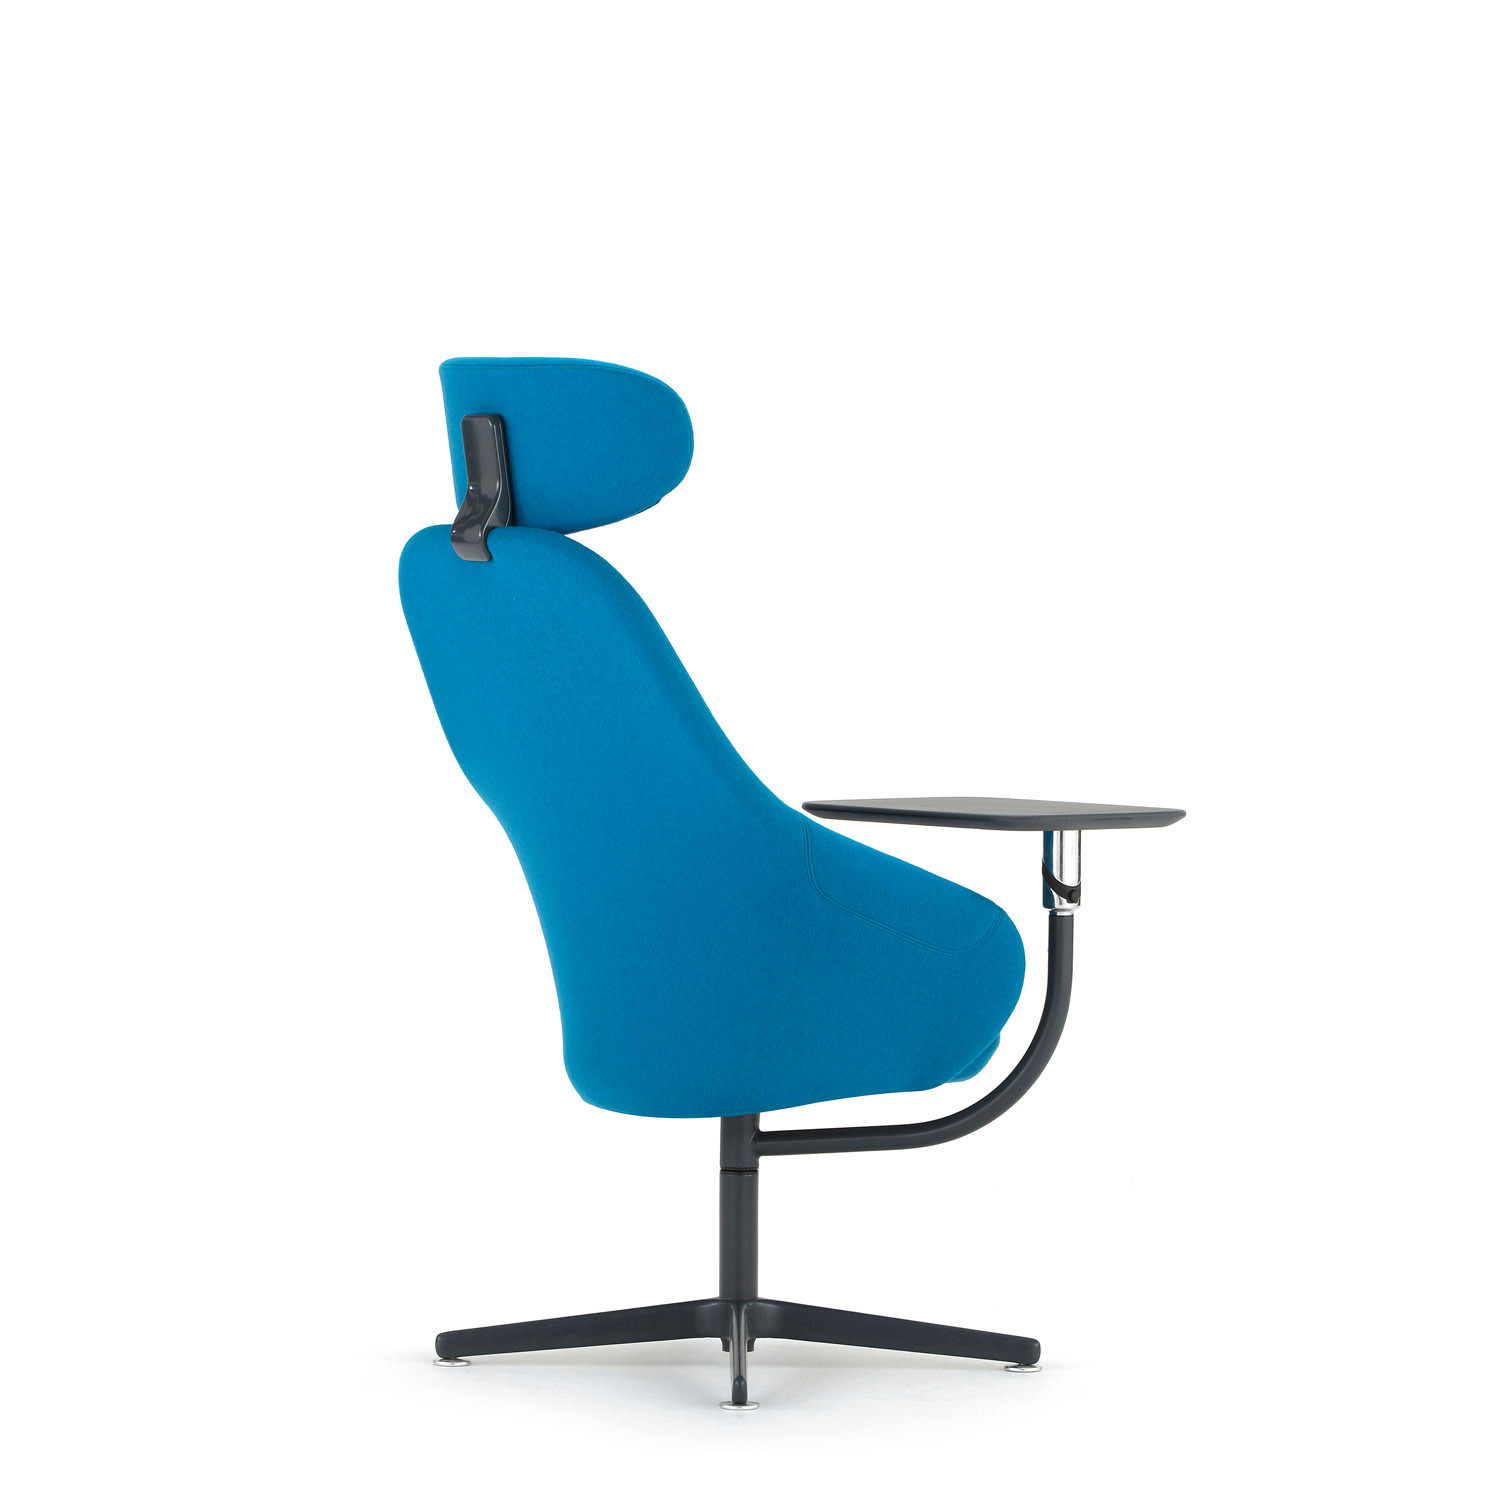 Ad-Lib Agile Working Chairs